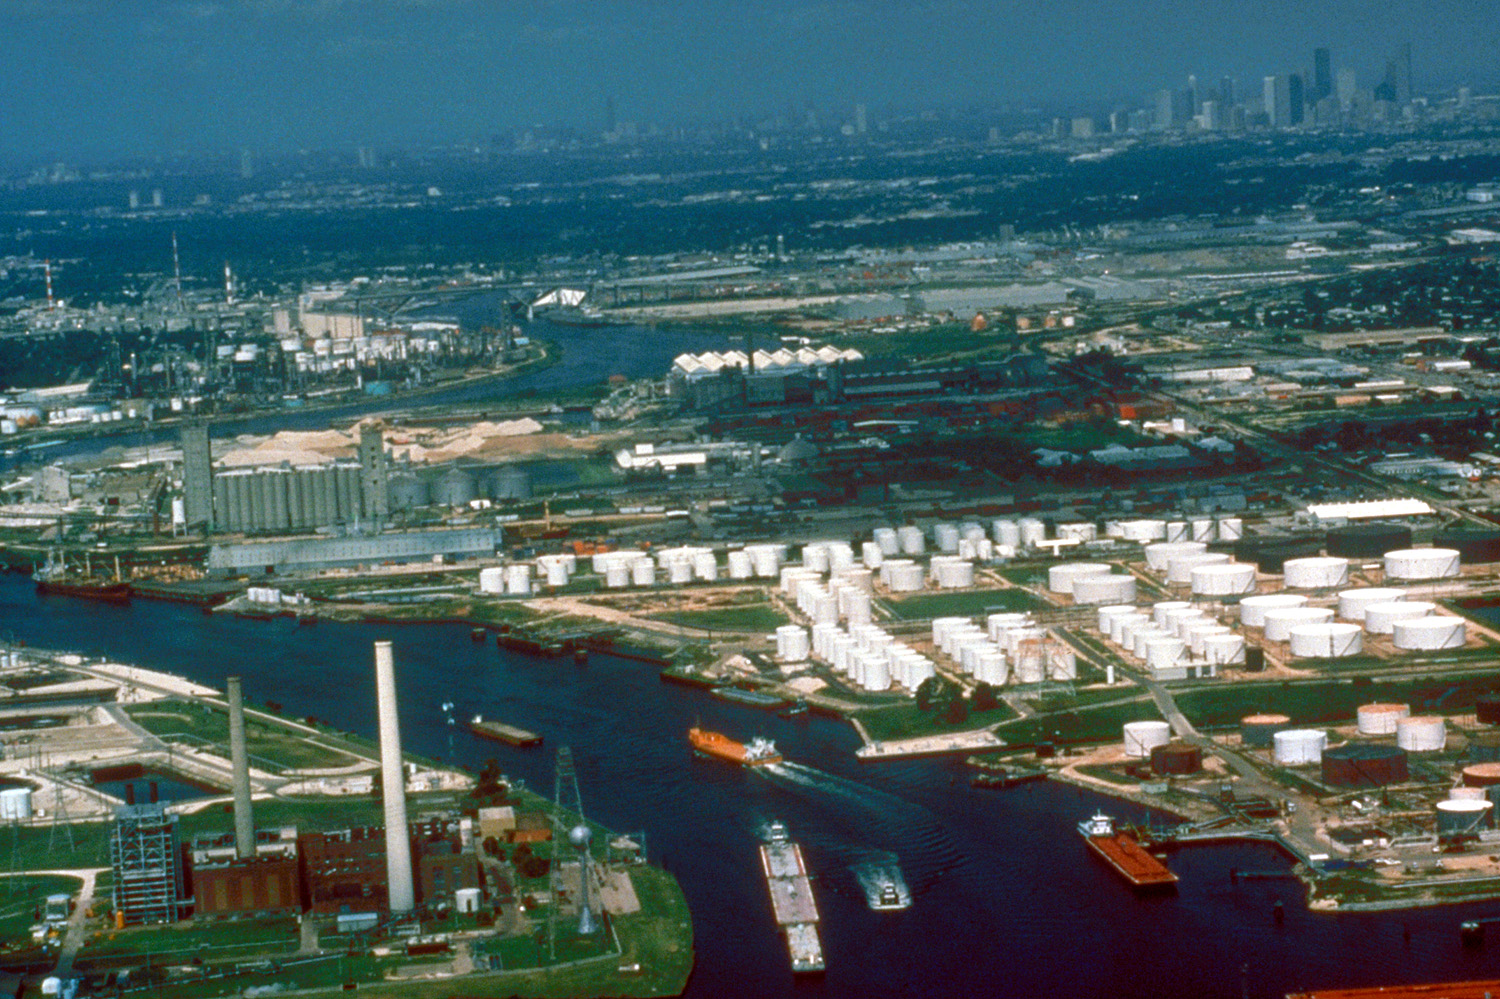 Refineries, fuel shipping terminals, and other industrial facilities along the Houston Ship Channel, 1999.